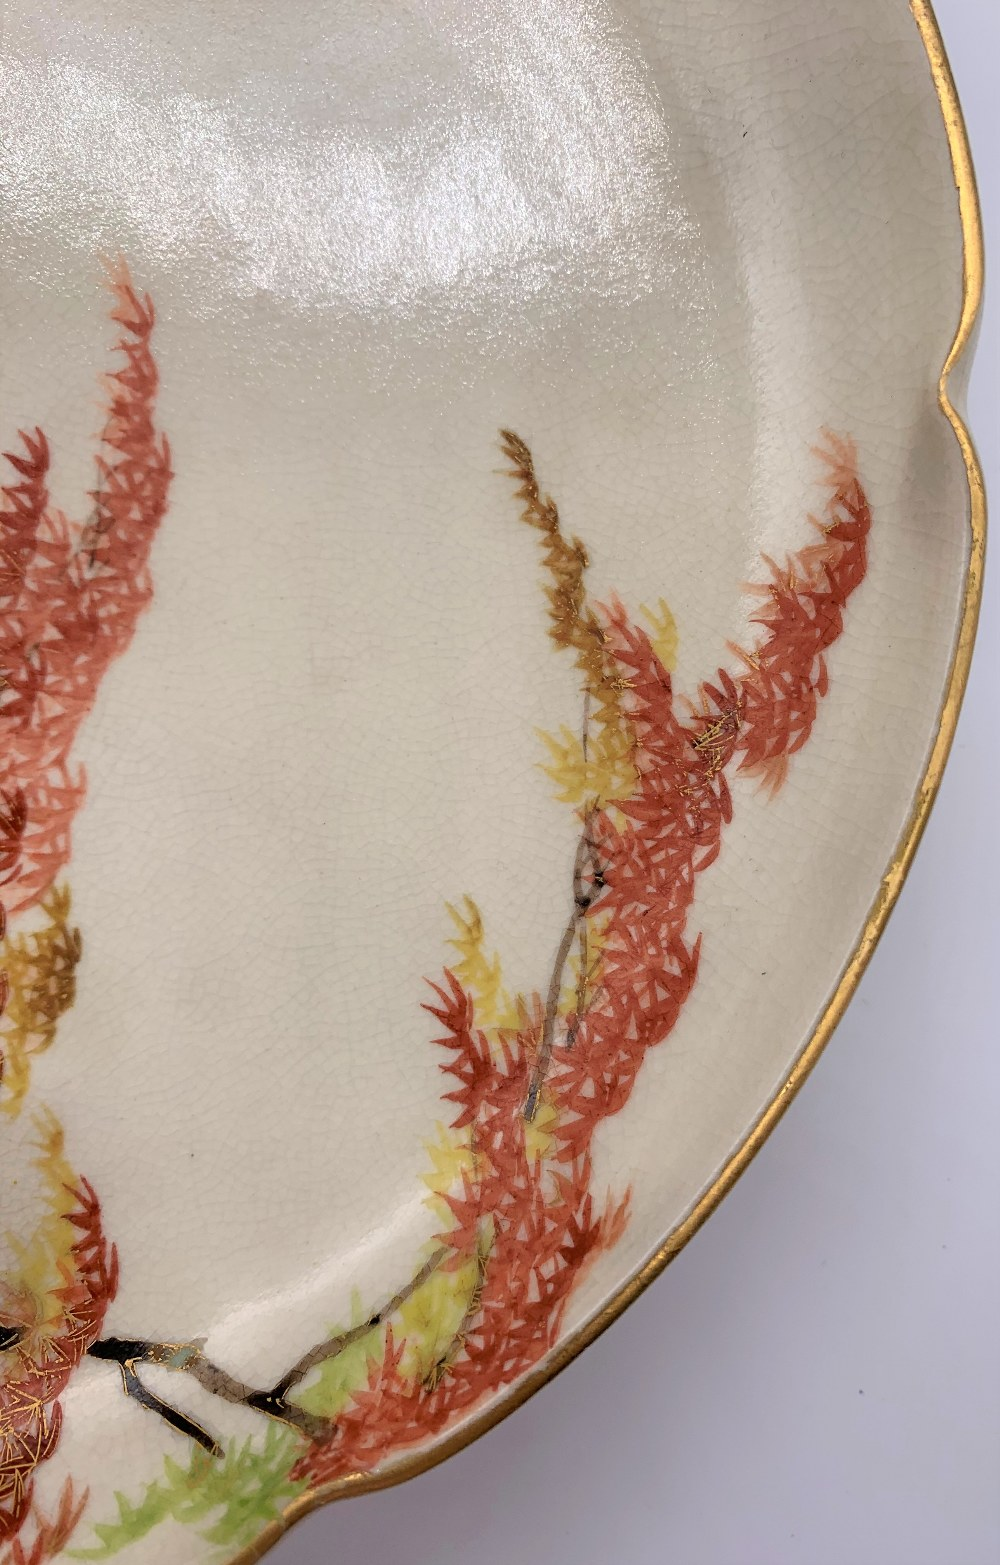 YABU MEIZAN; a fine Japanese Meiji period Satsuma dish with shaped rim and central panel decorated - Image 3 of 8